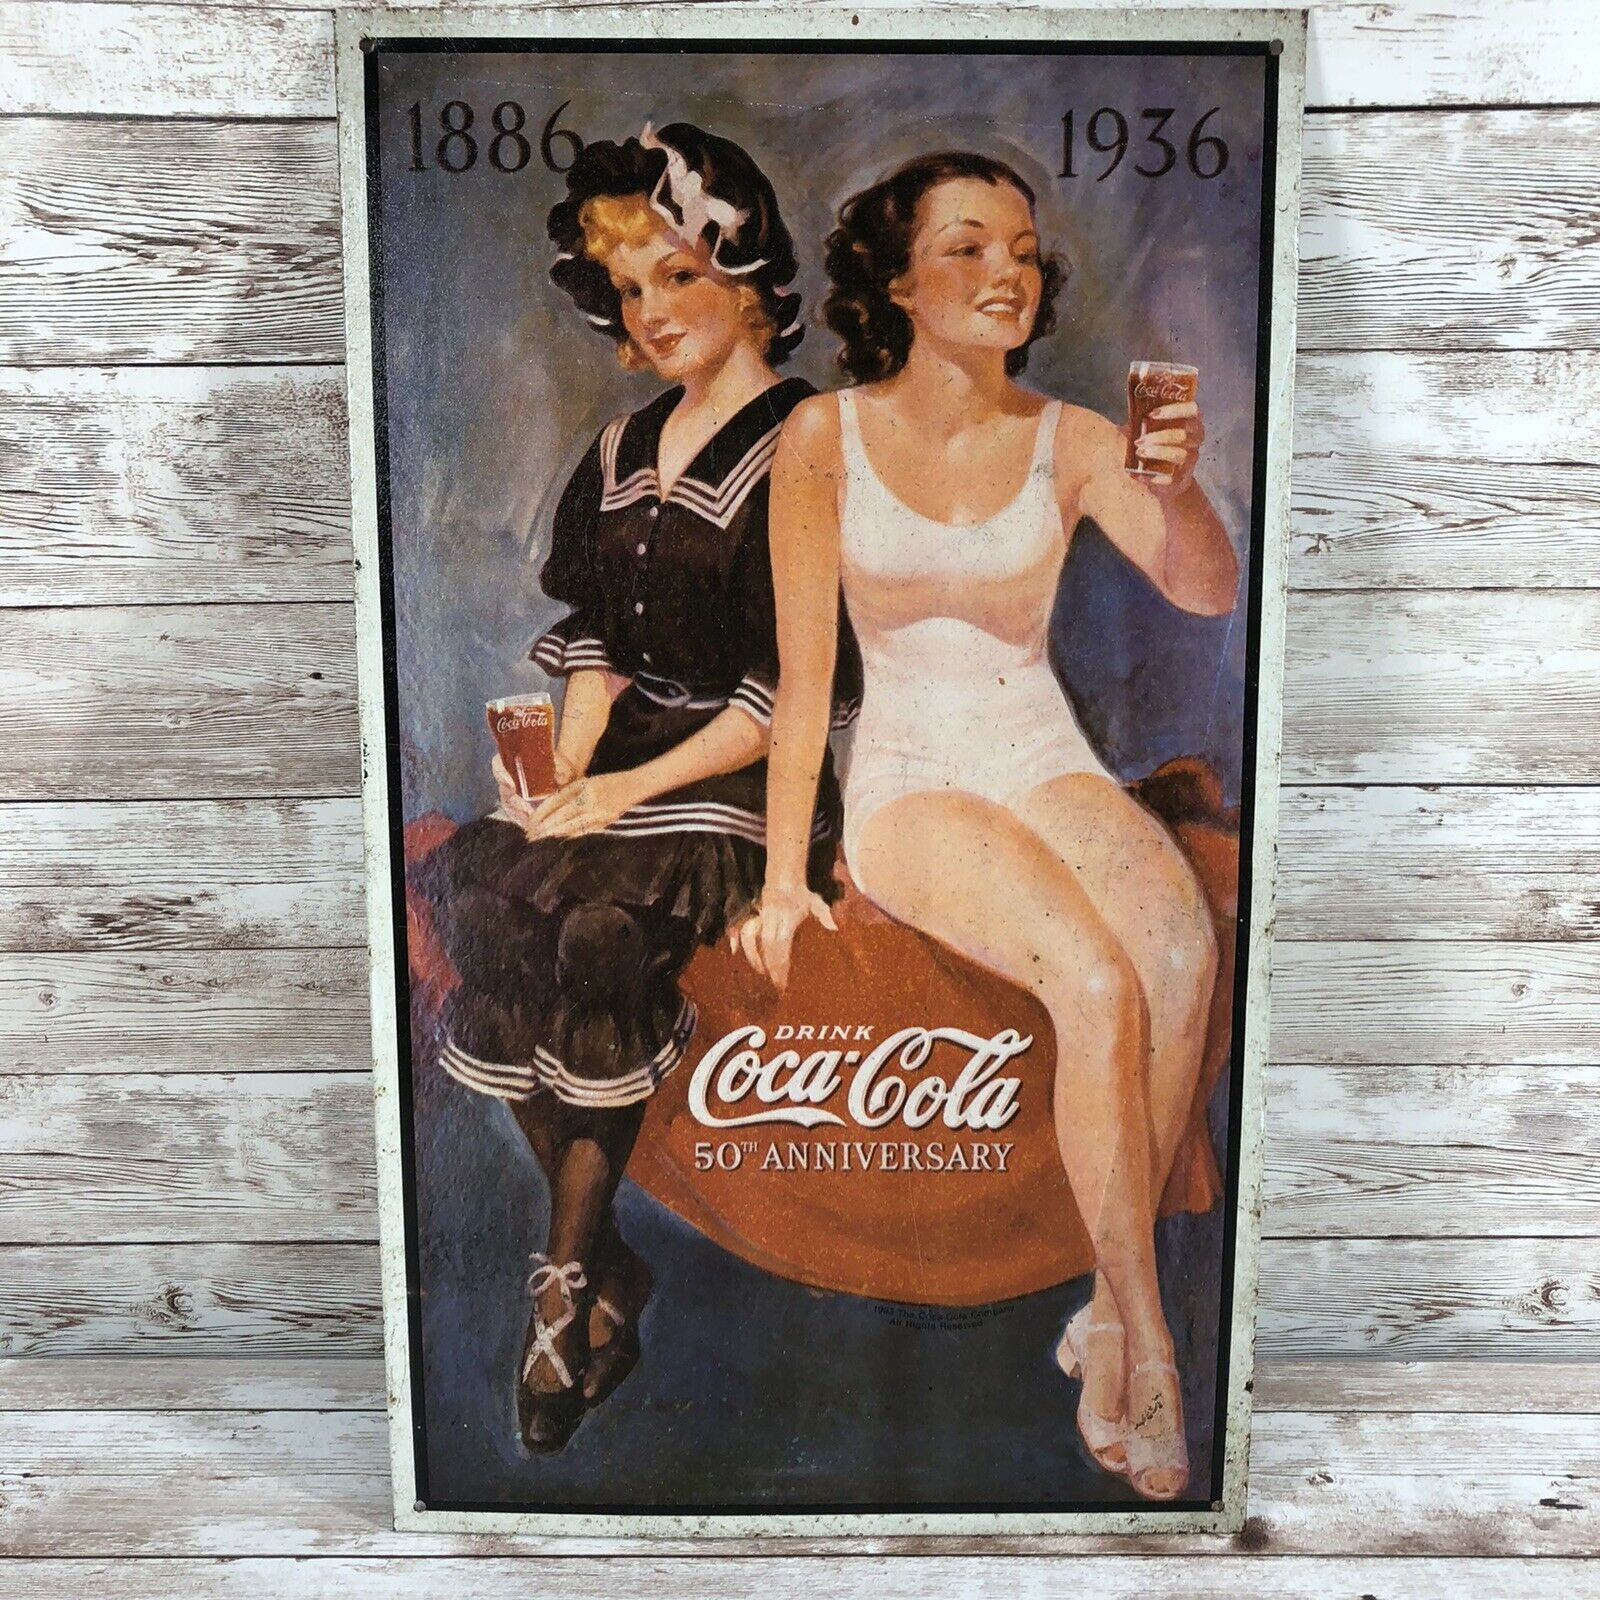 Primary image for 1993 Coca-cola 50th Anniversary Metal Sign Pinup Girls